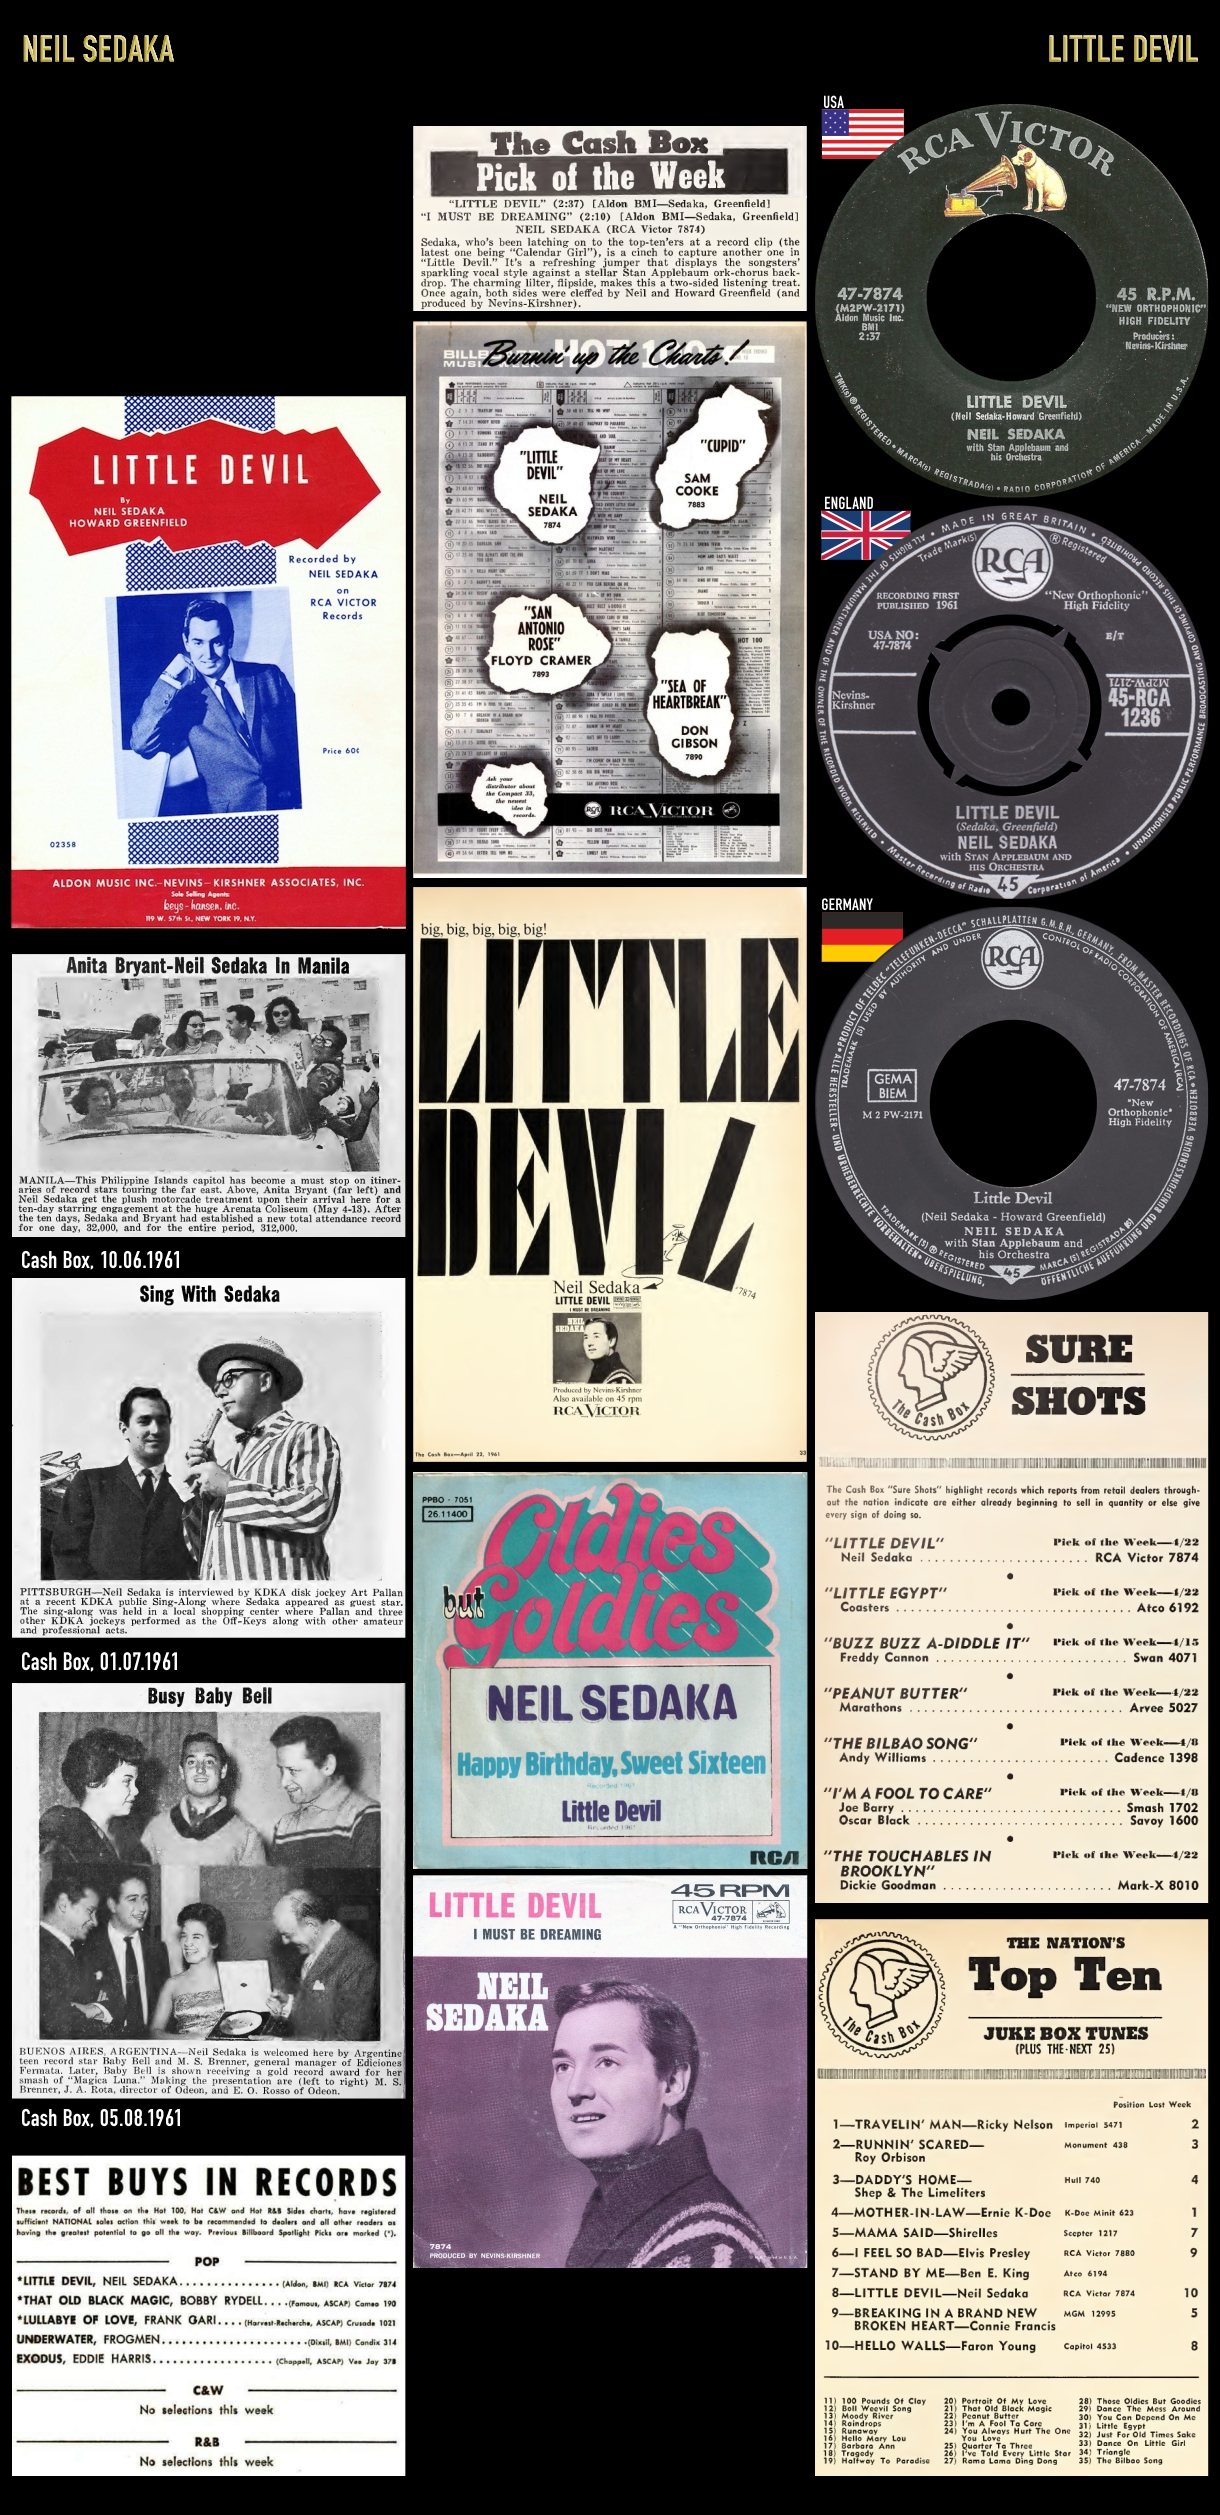 610520_Neil Sedaka_Little Devil